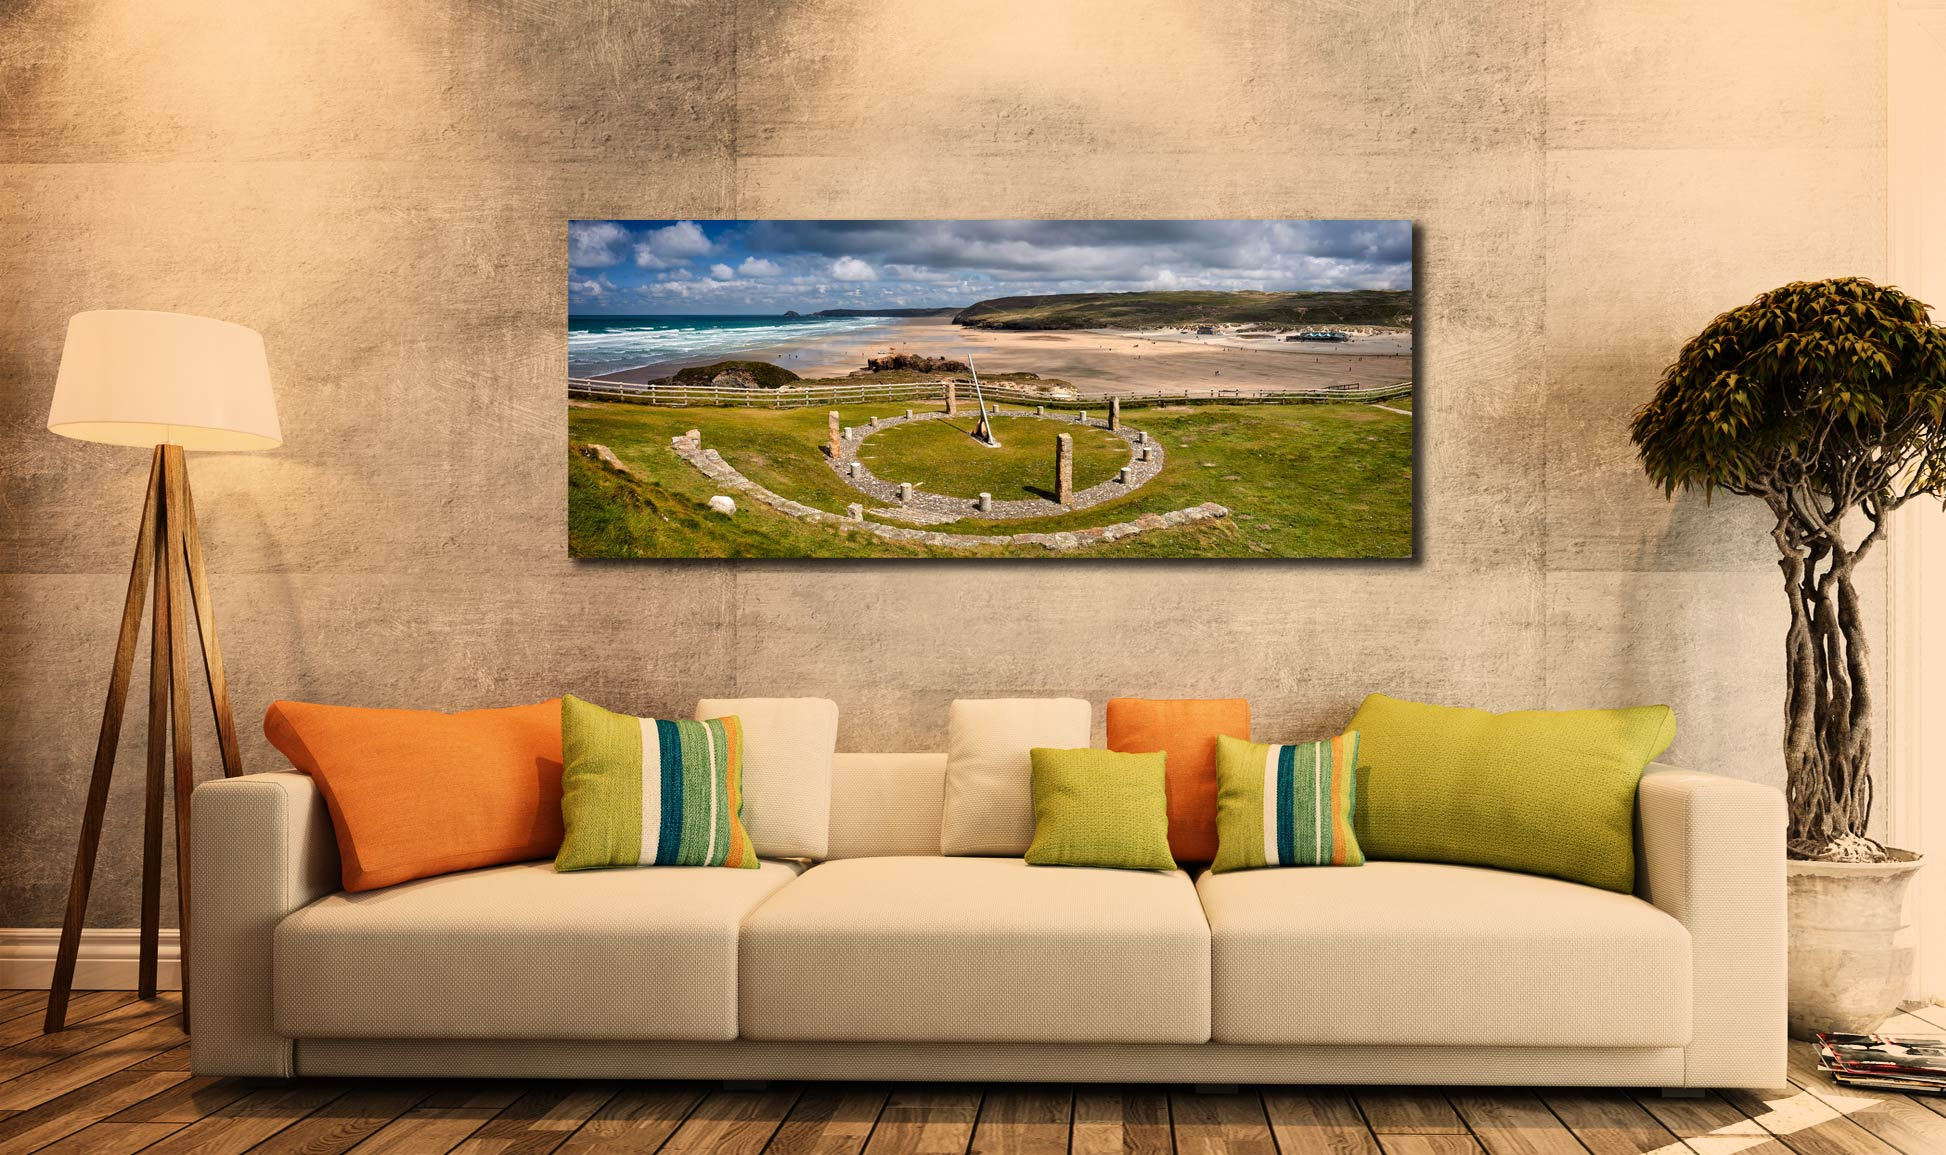 View over the Sundial to the golden beach at Perranporth - Print Aluminium Backing With Acrylic Glazing on Wall